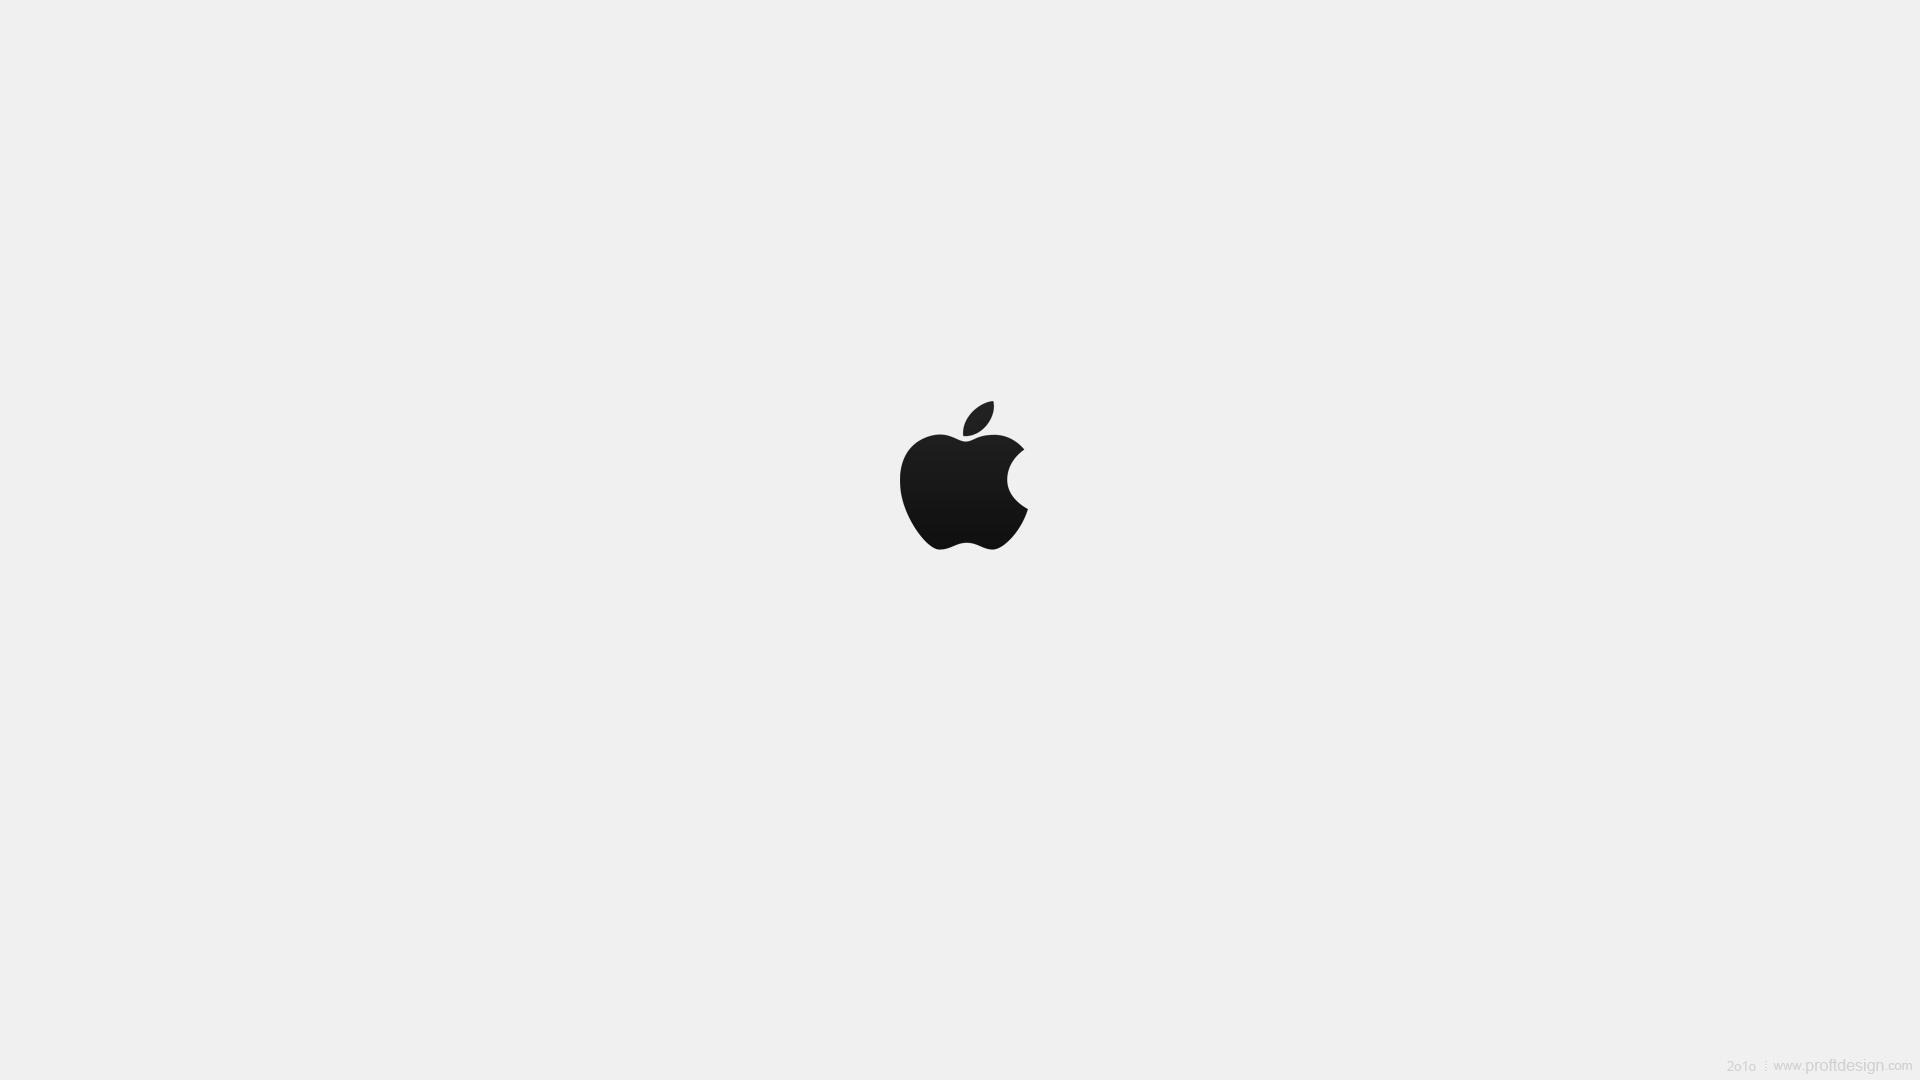 Collection of Apple Wallpapers on HDWallpapers